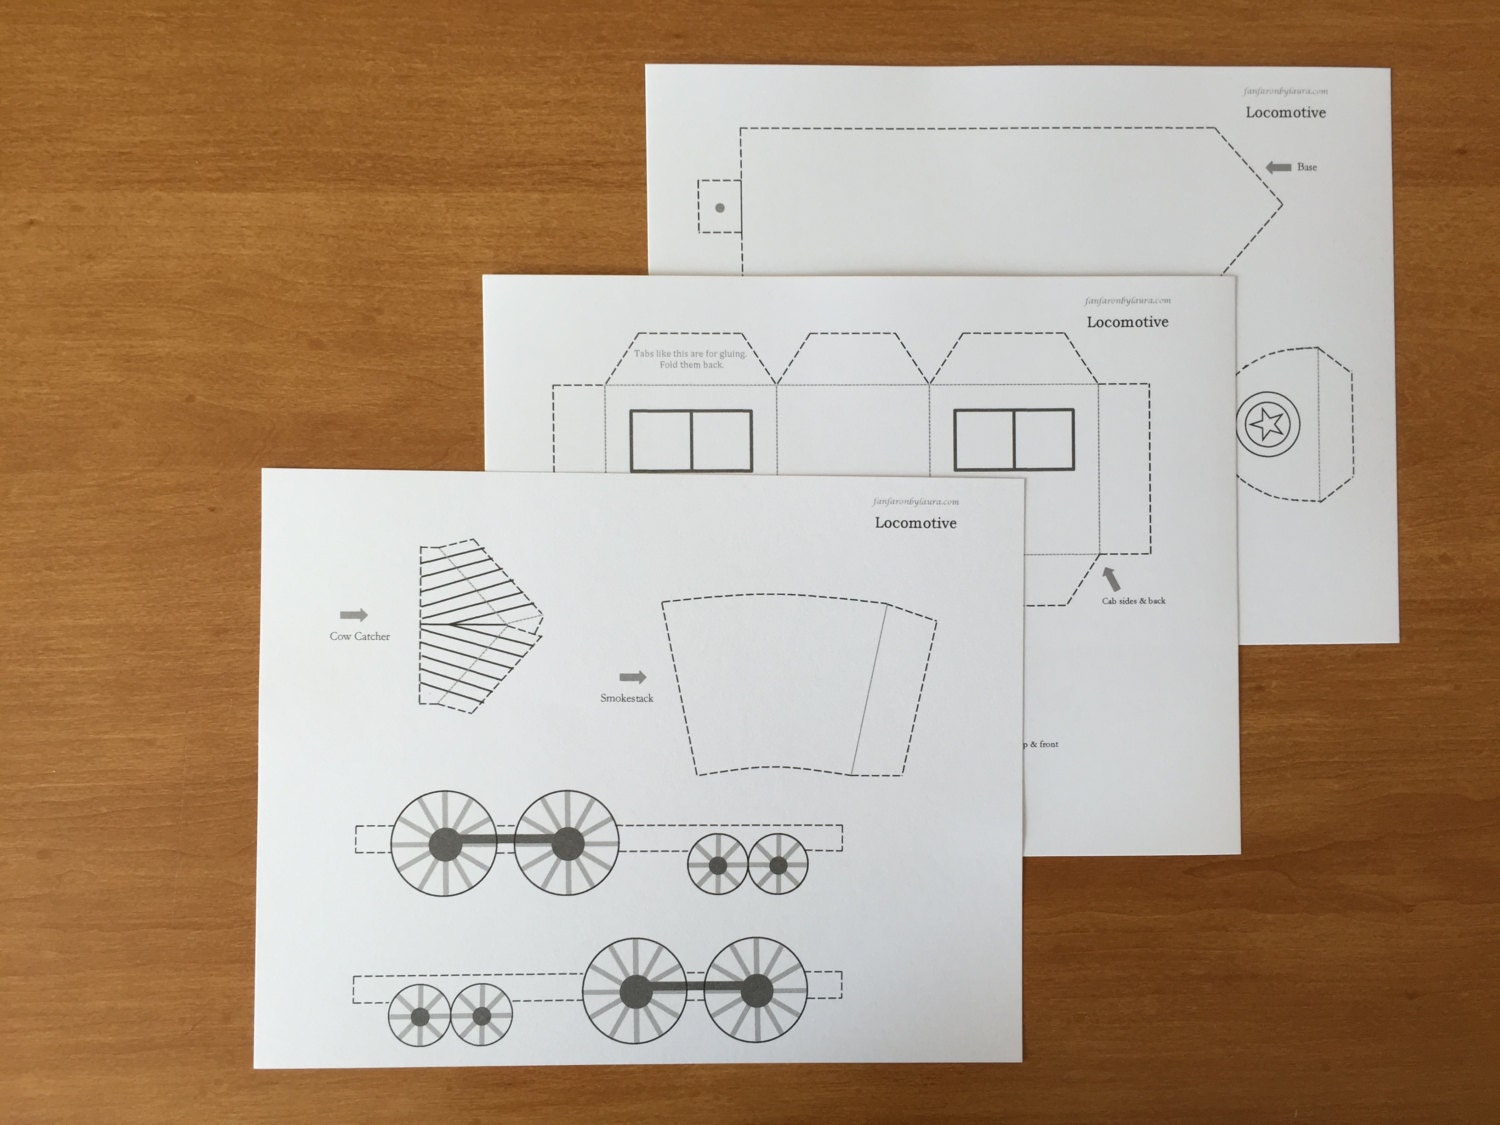 3D Paper Train: Instant Download Template from Fanfaron on Etsy Studio